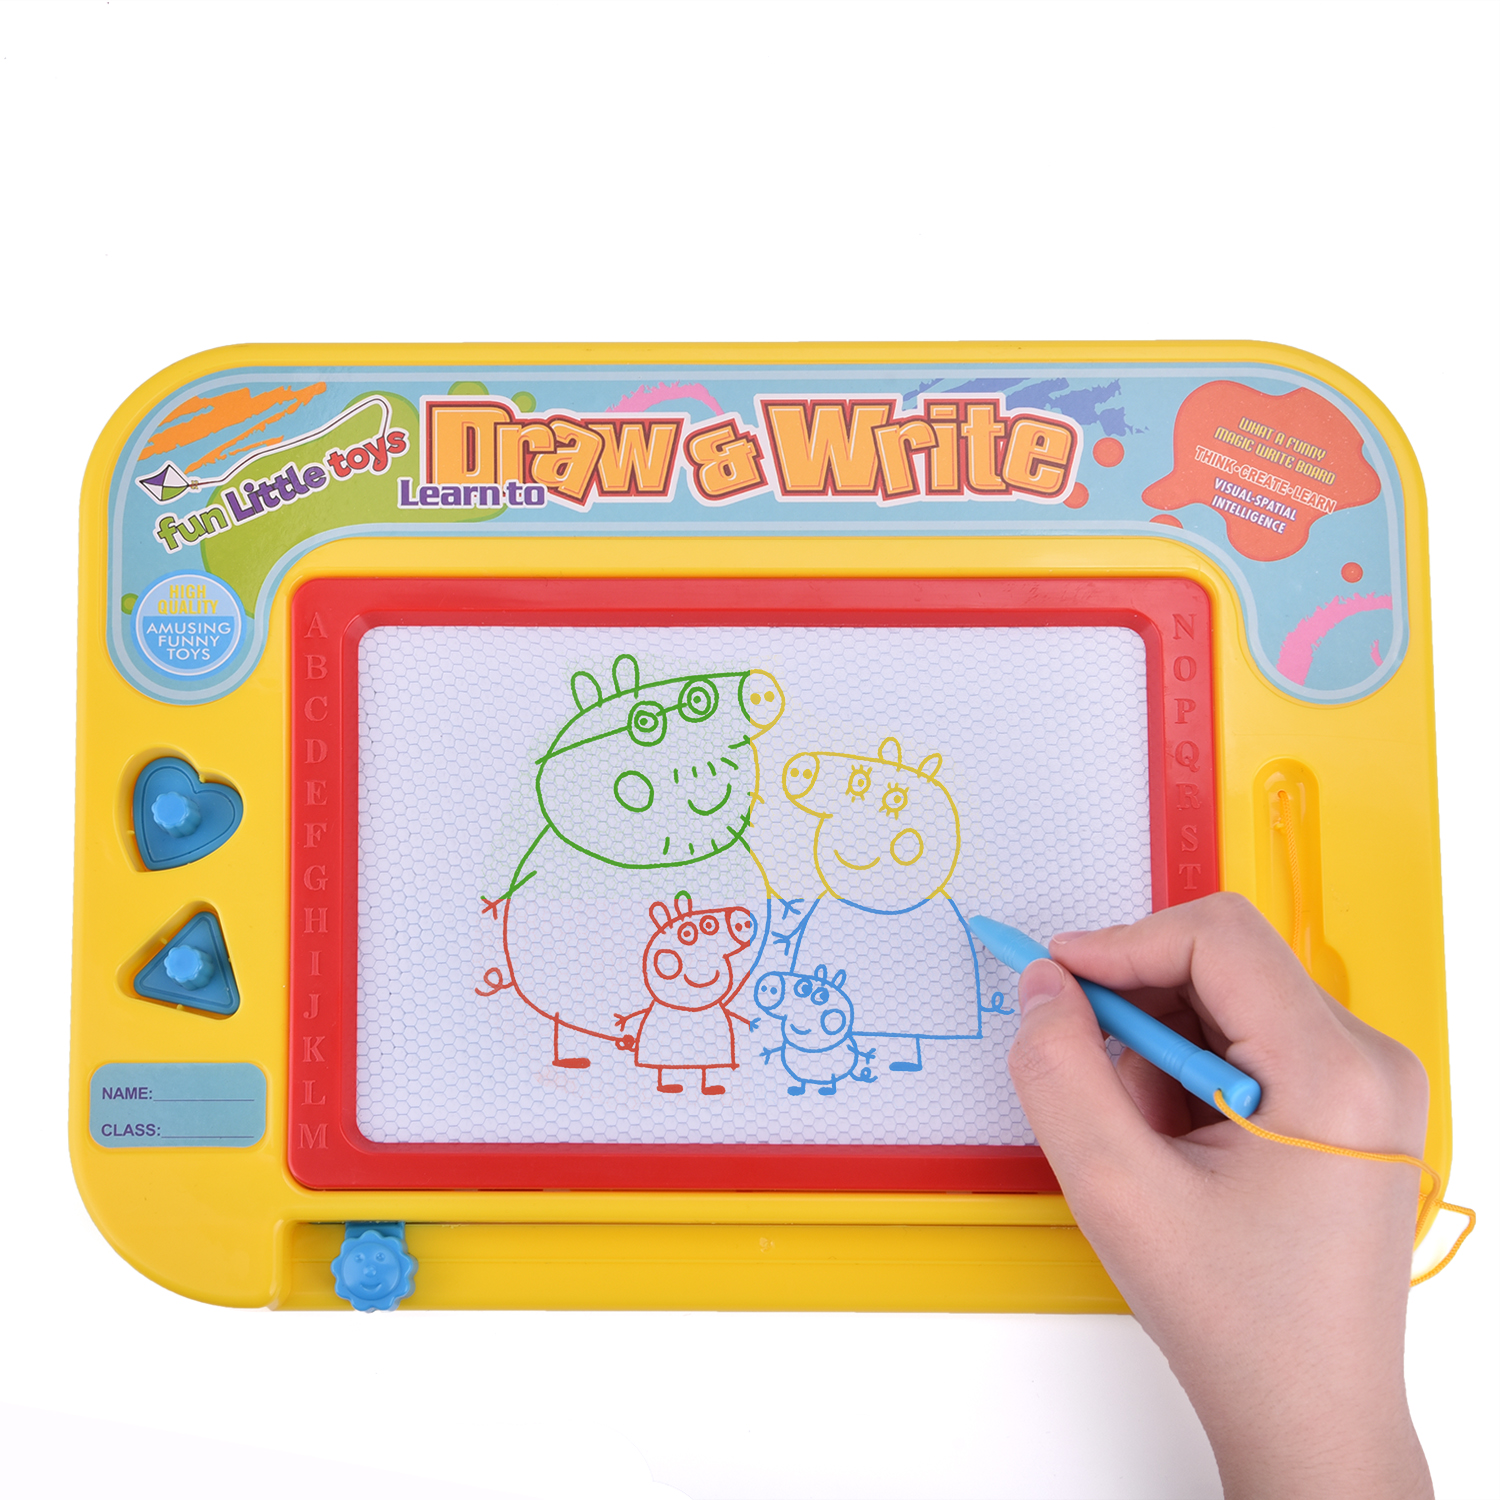 Magnetic Drawing Board Doodle Sketch Writing Learning Toys for Kids Gift with a Stylus Pen and 2 Stamps F-175